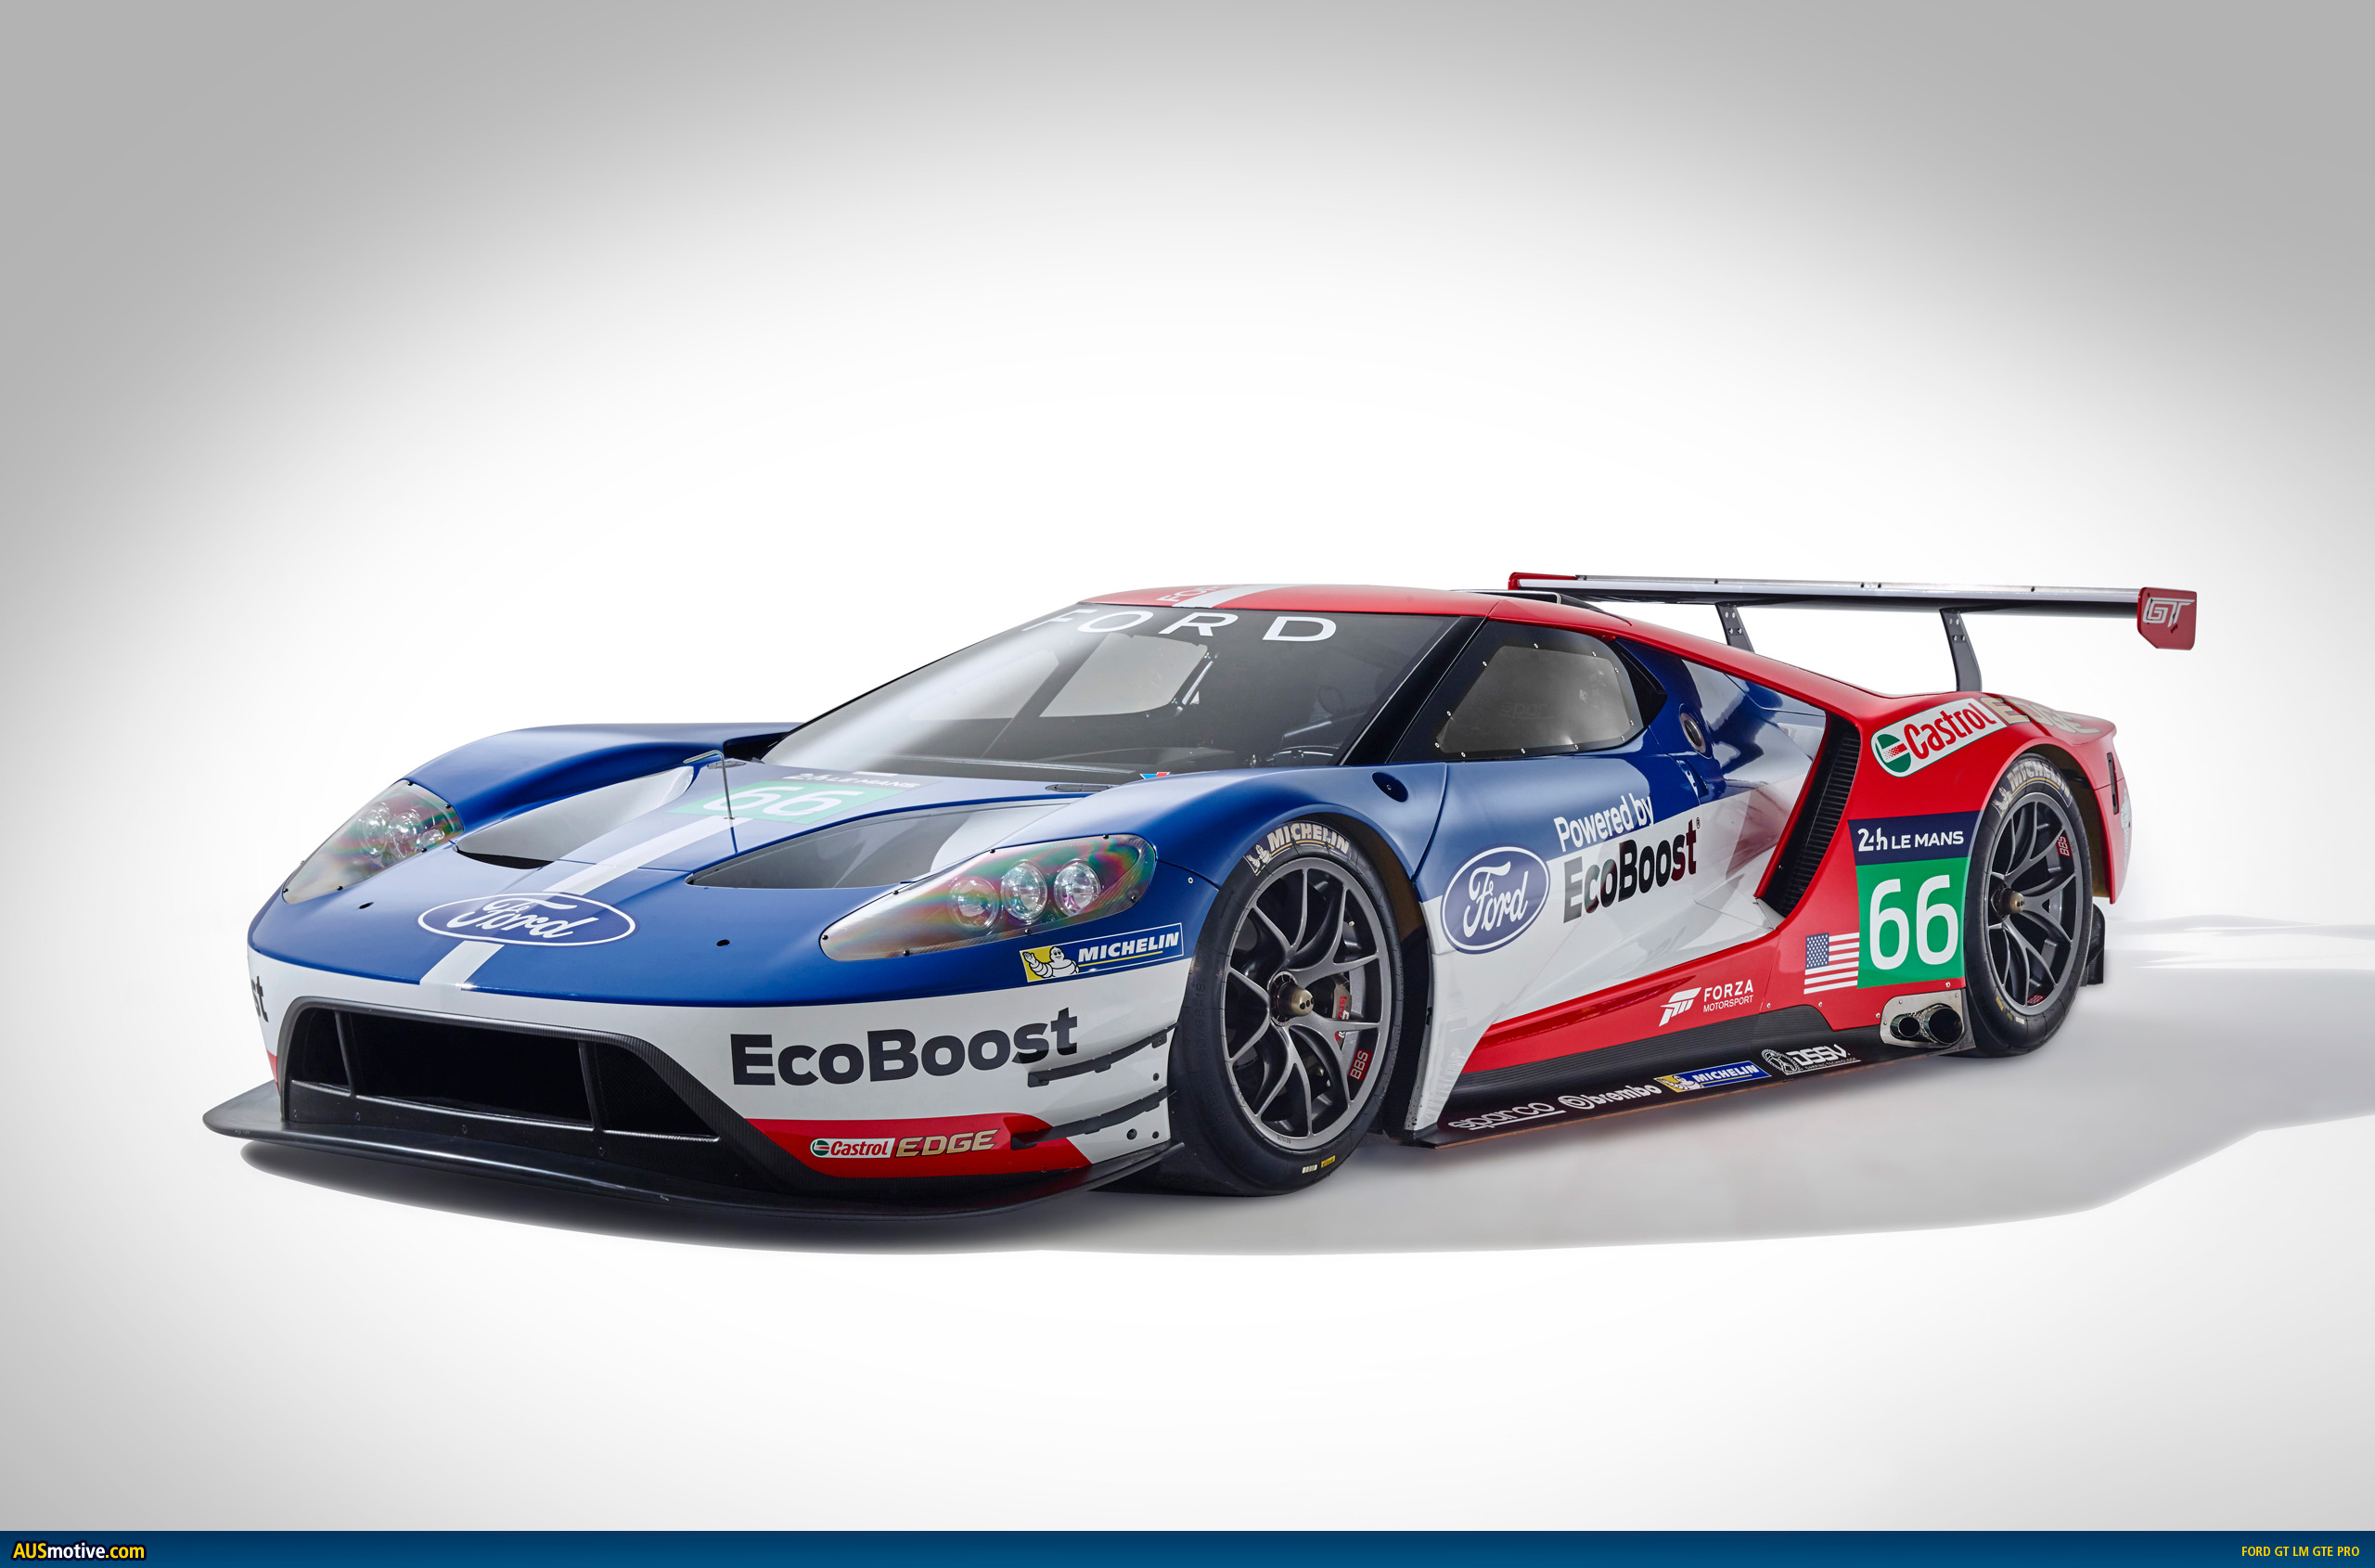 AUSmotive.com » Ford returns to Le Mans in 2016